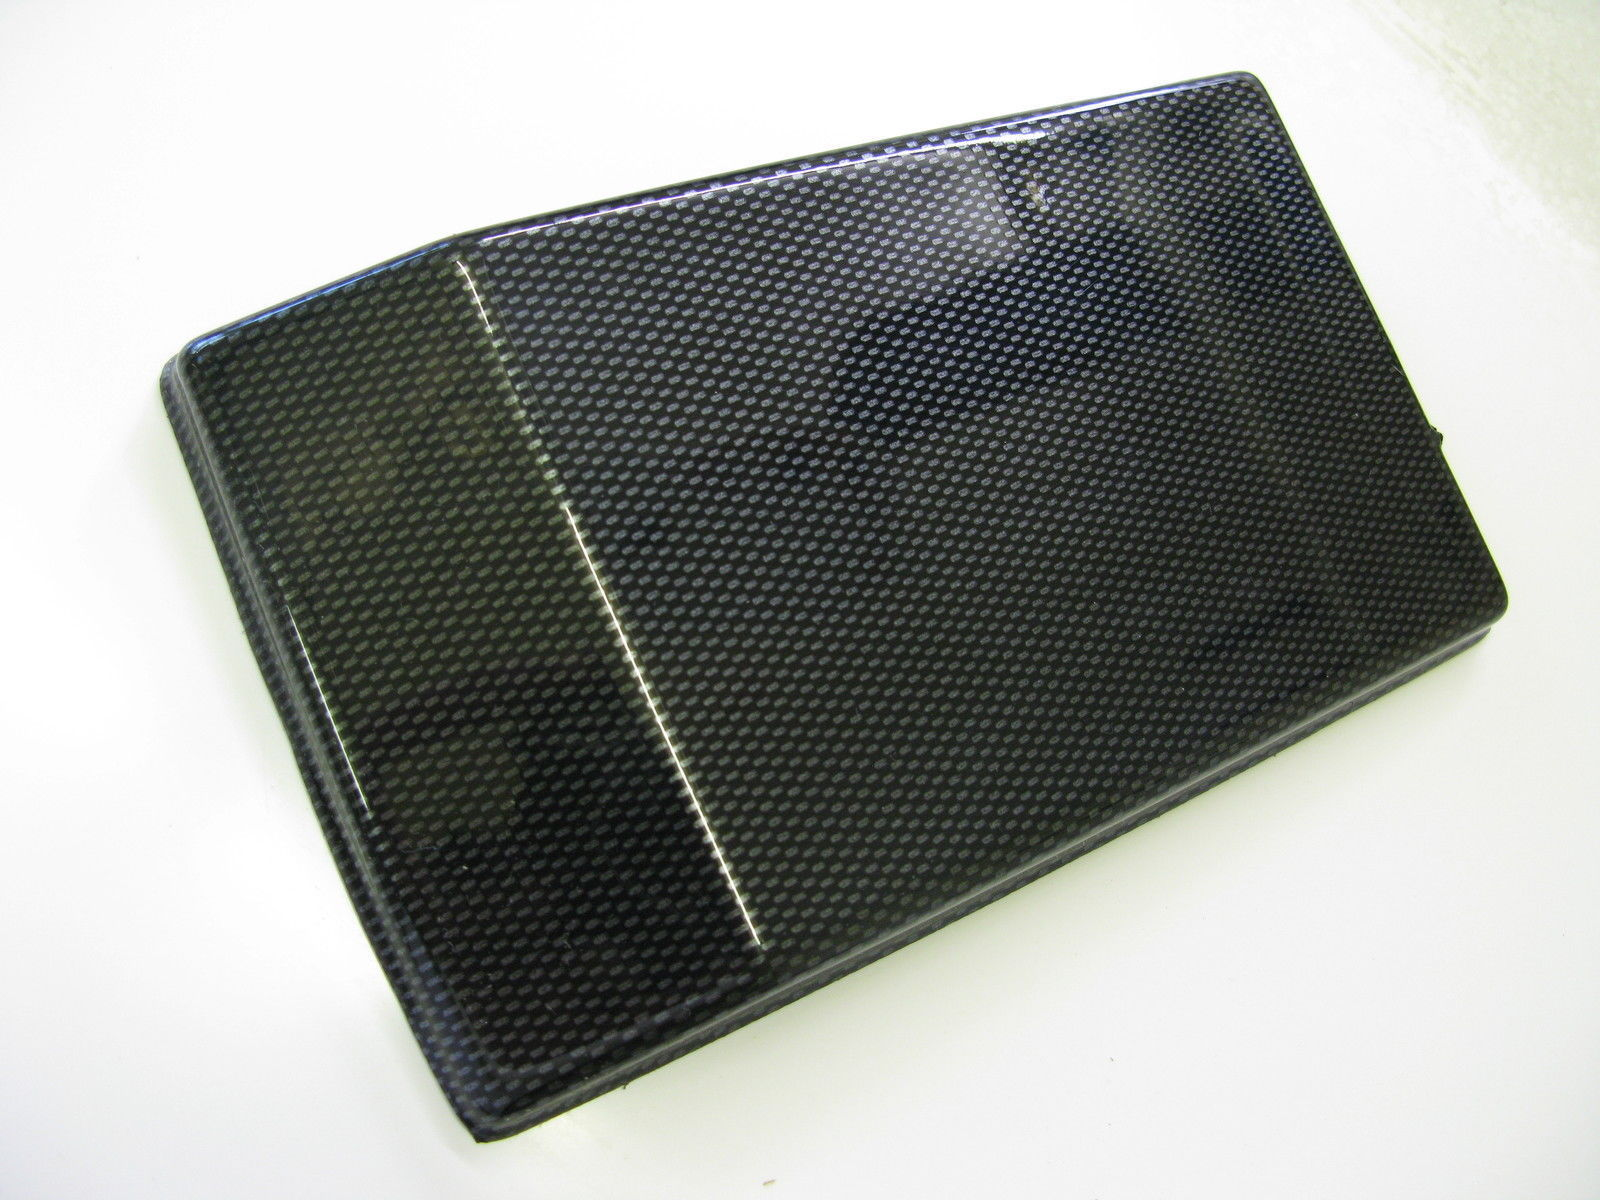 Ford Focus Mk1 Rs St Fuse Box Cover Carbon Fibre Effect Abs Plastic Parts Of A